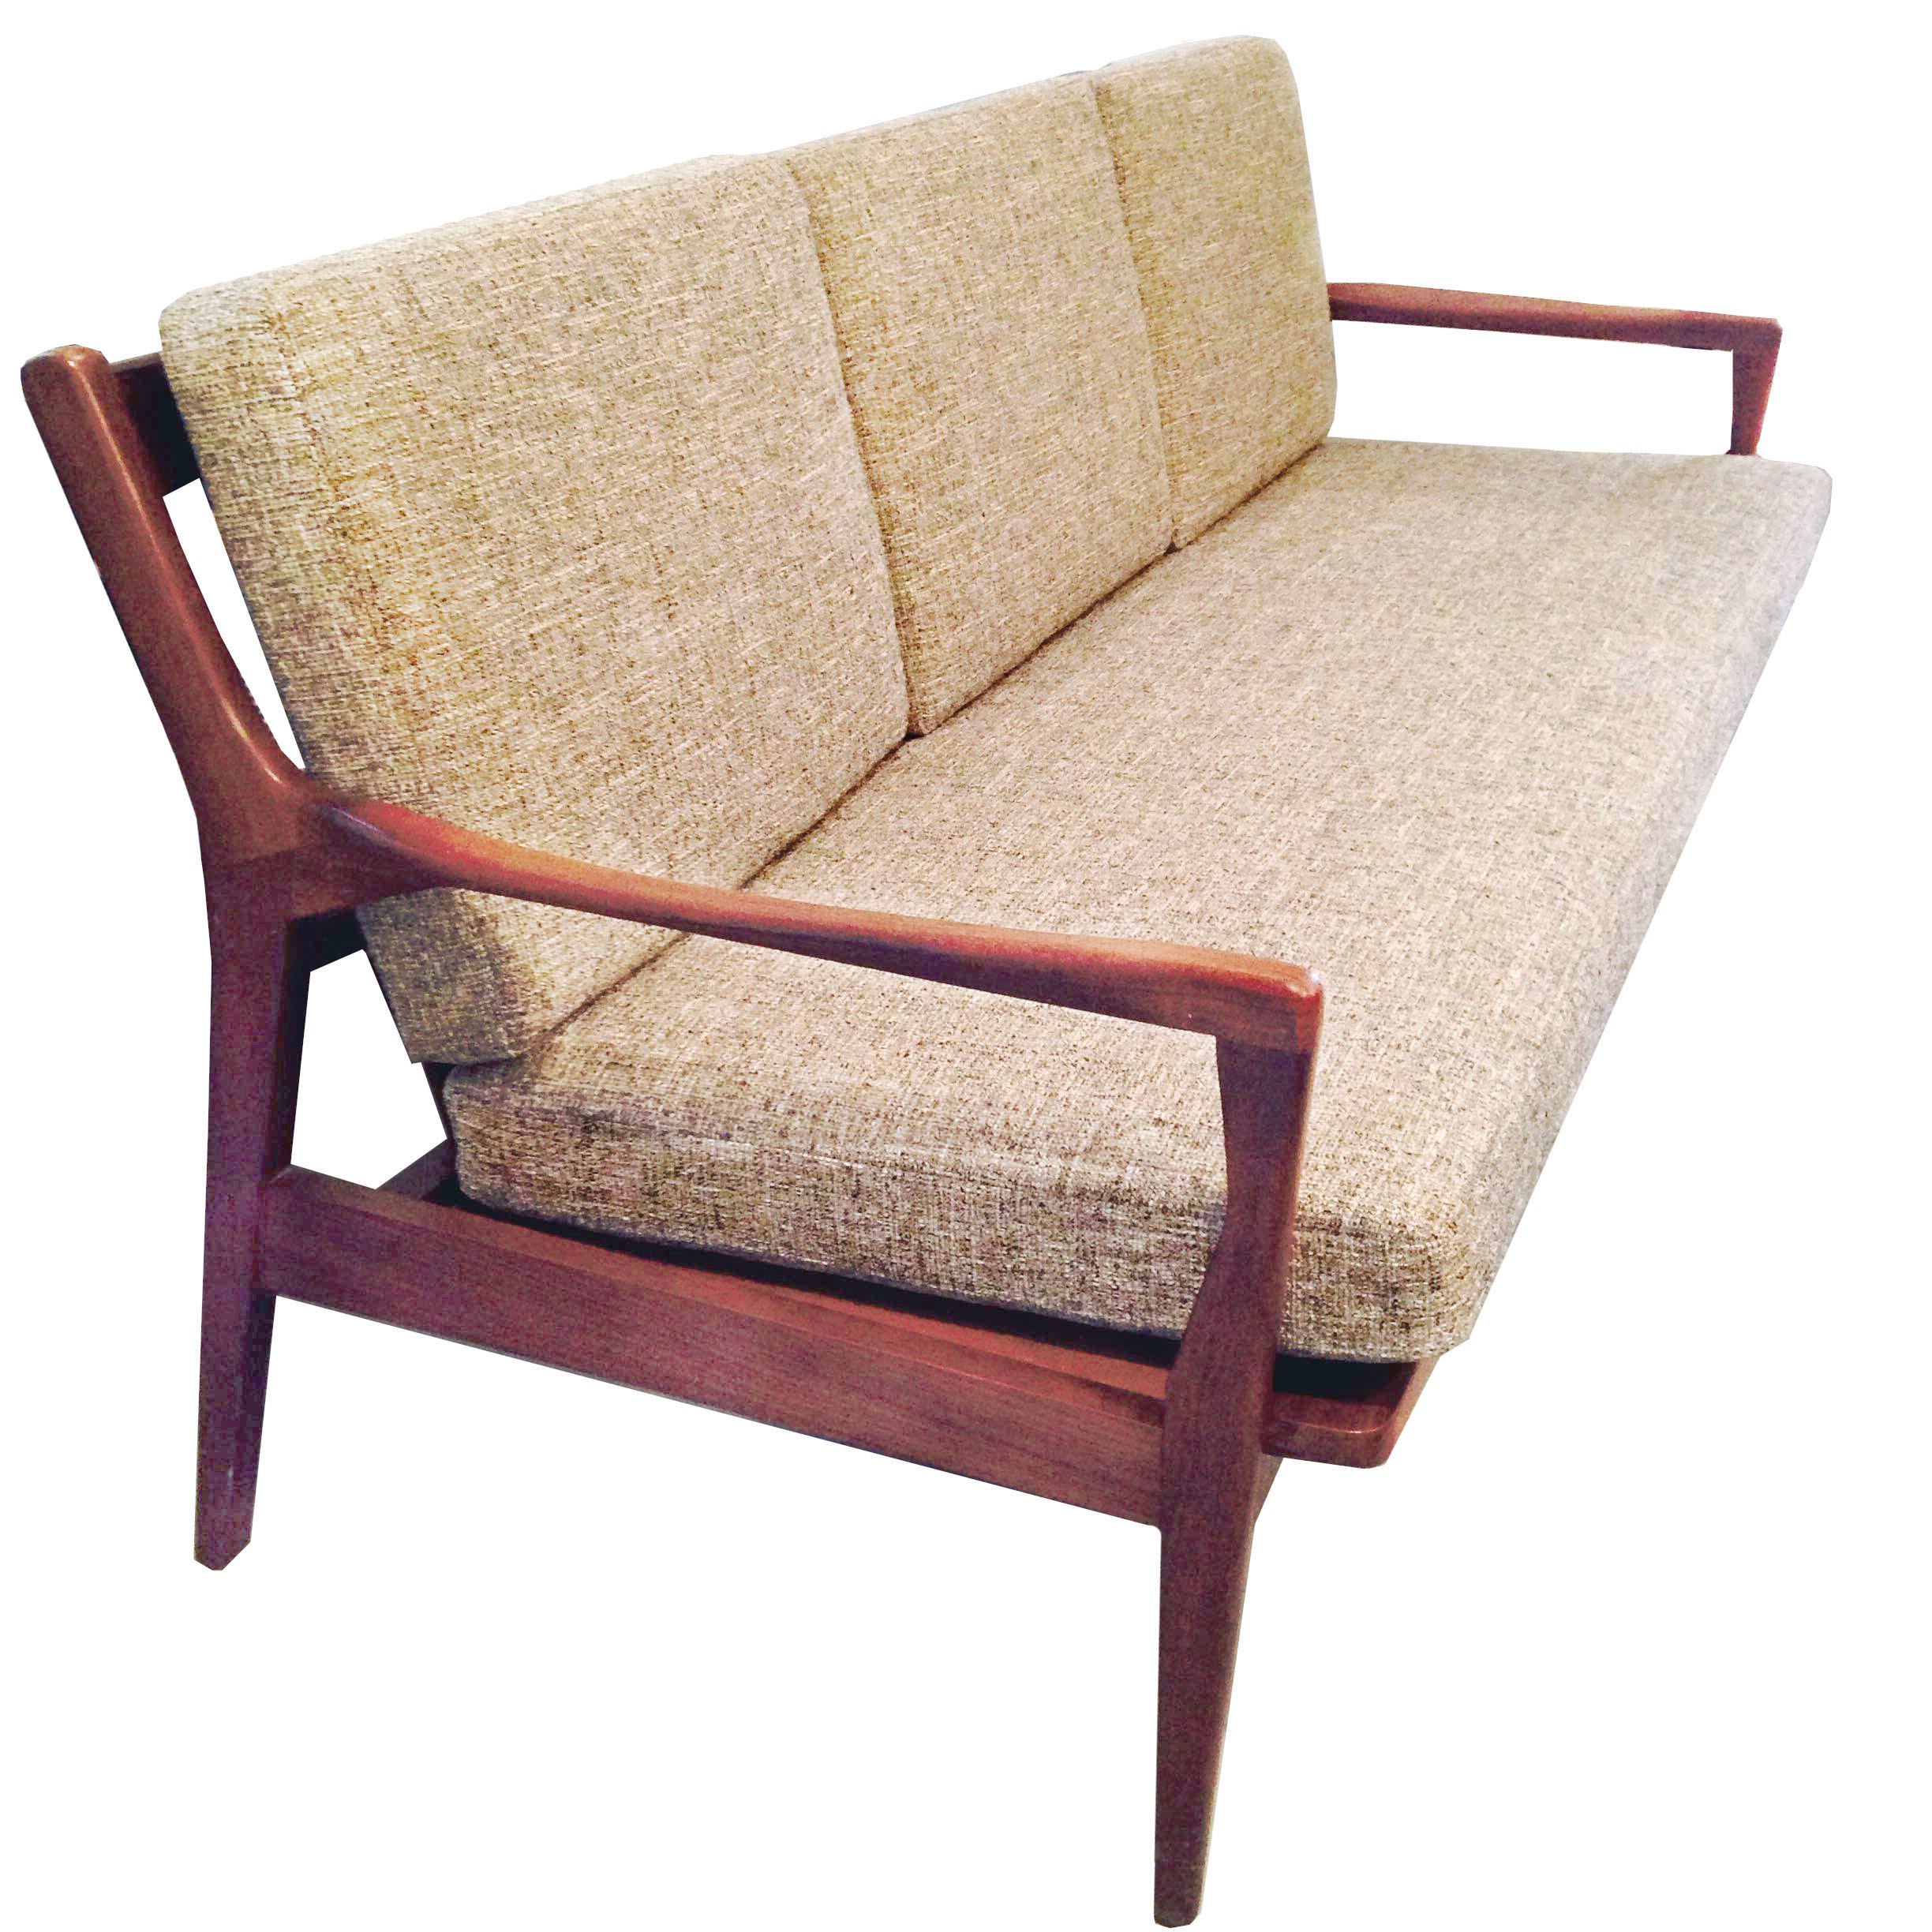 Kijiji Kitchener Furniture Mid Century Teak Furniture Toronto Modroxcom